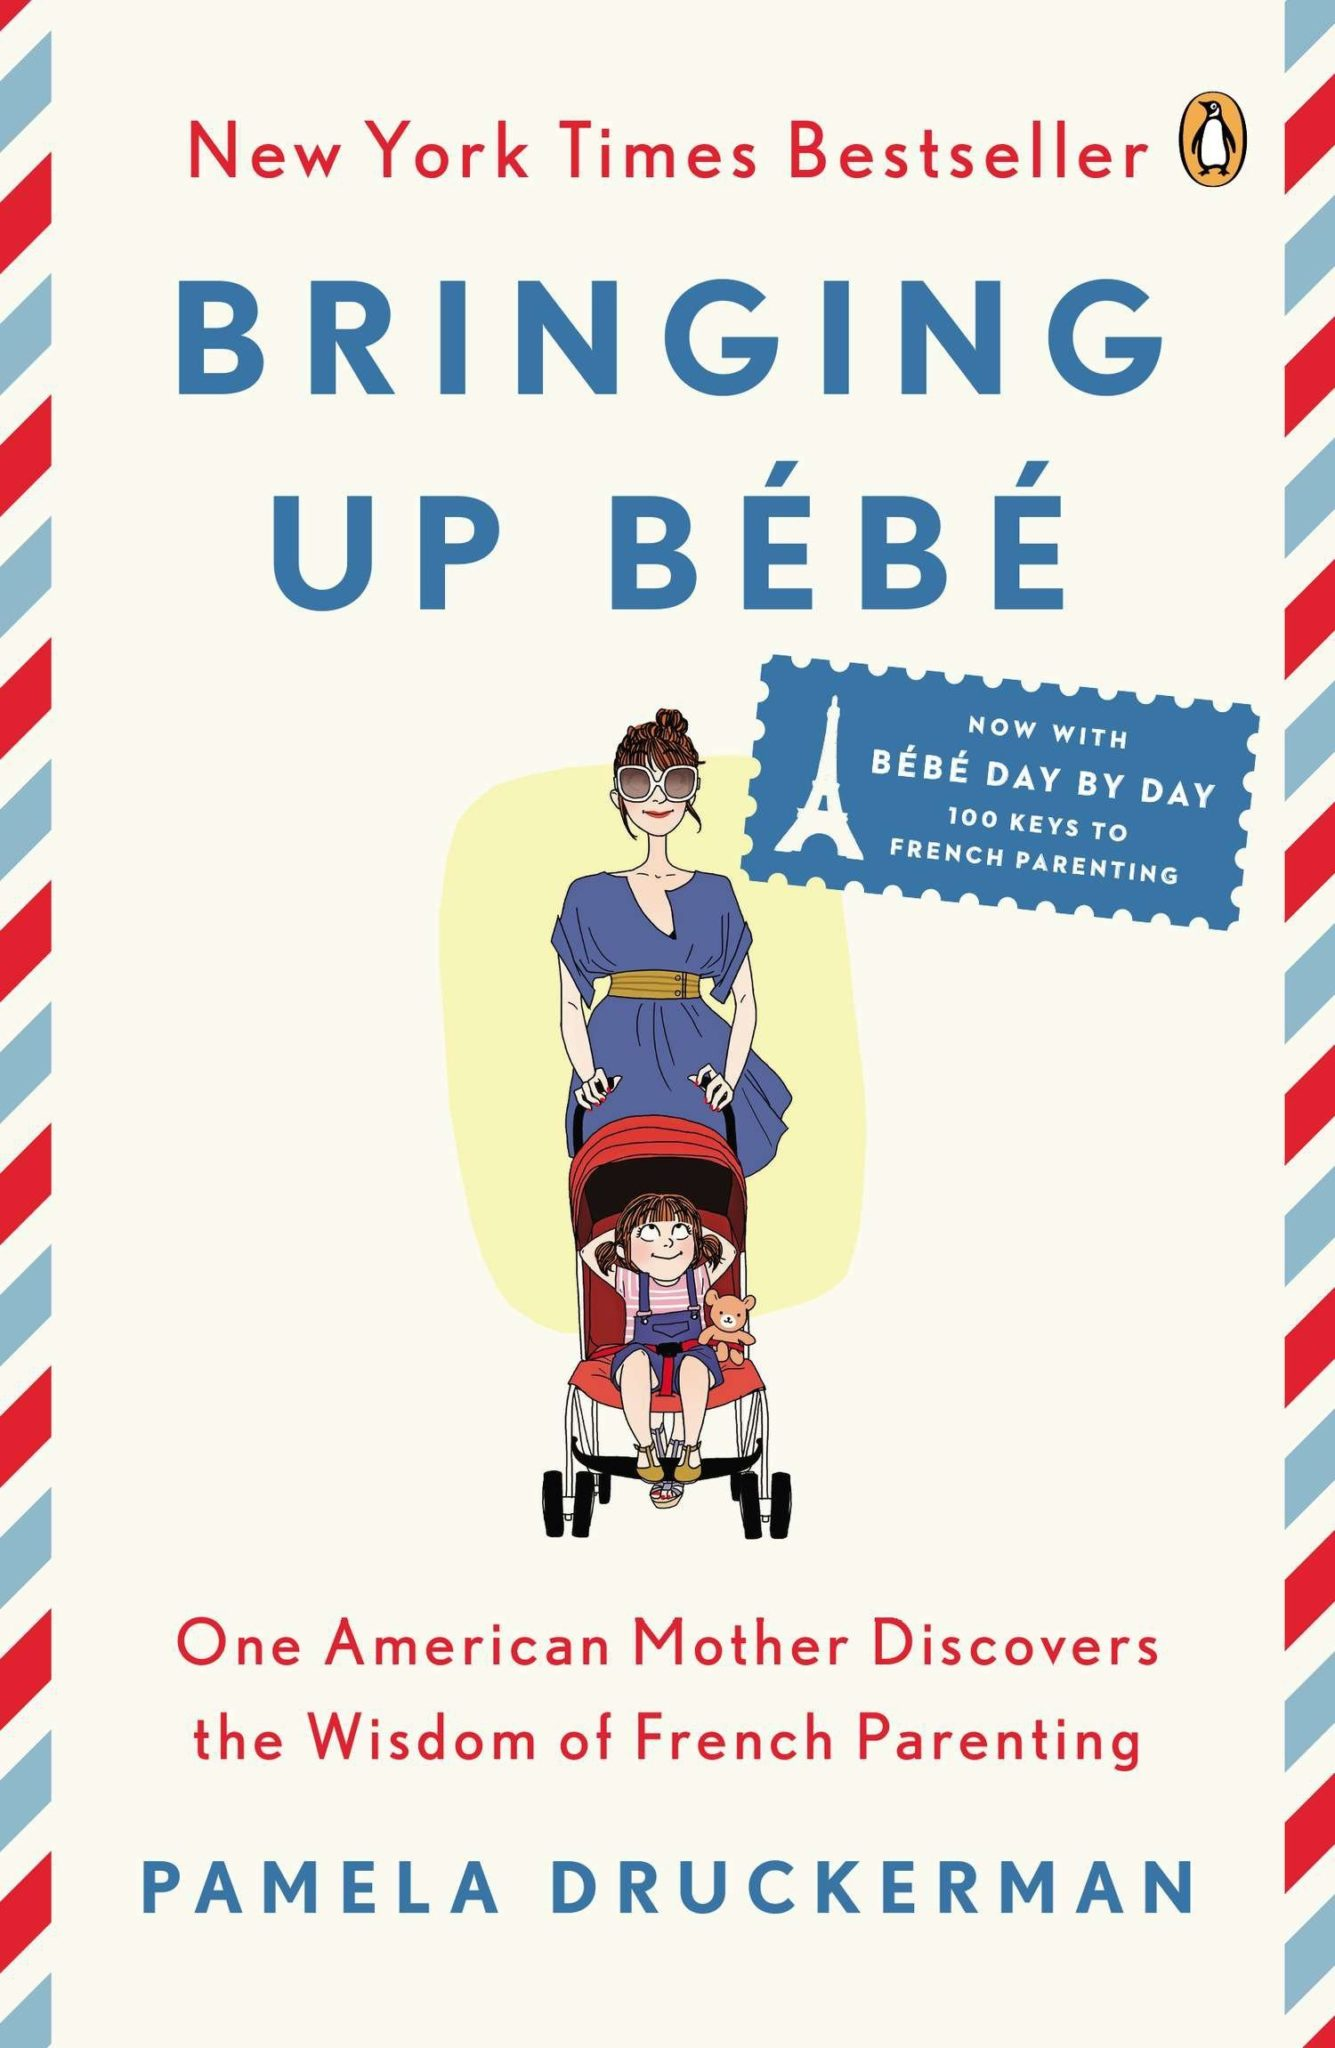 Bringing Up Bébé- One American Mother Discovers the Wisdom of French Parenting